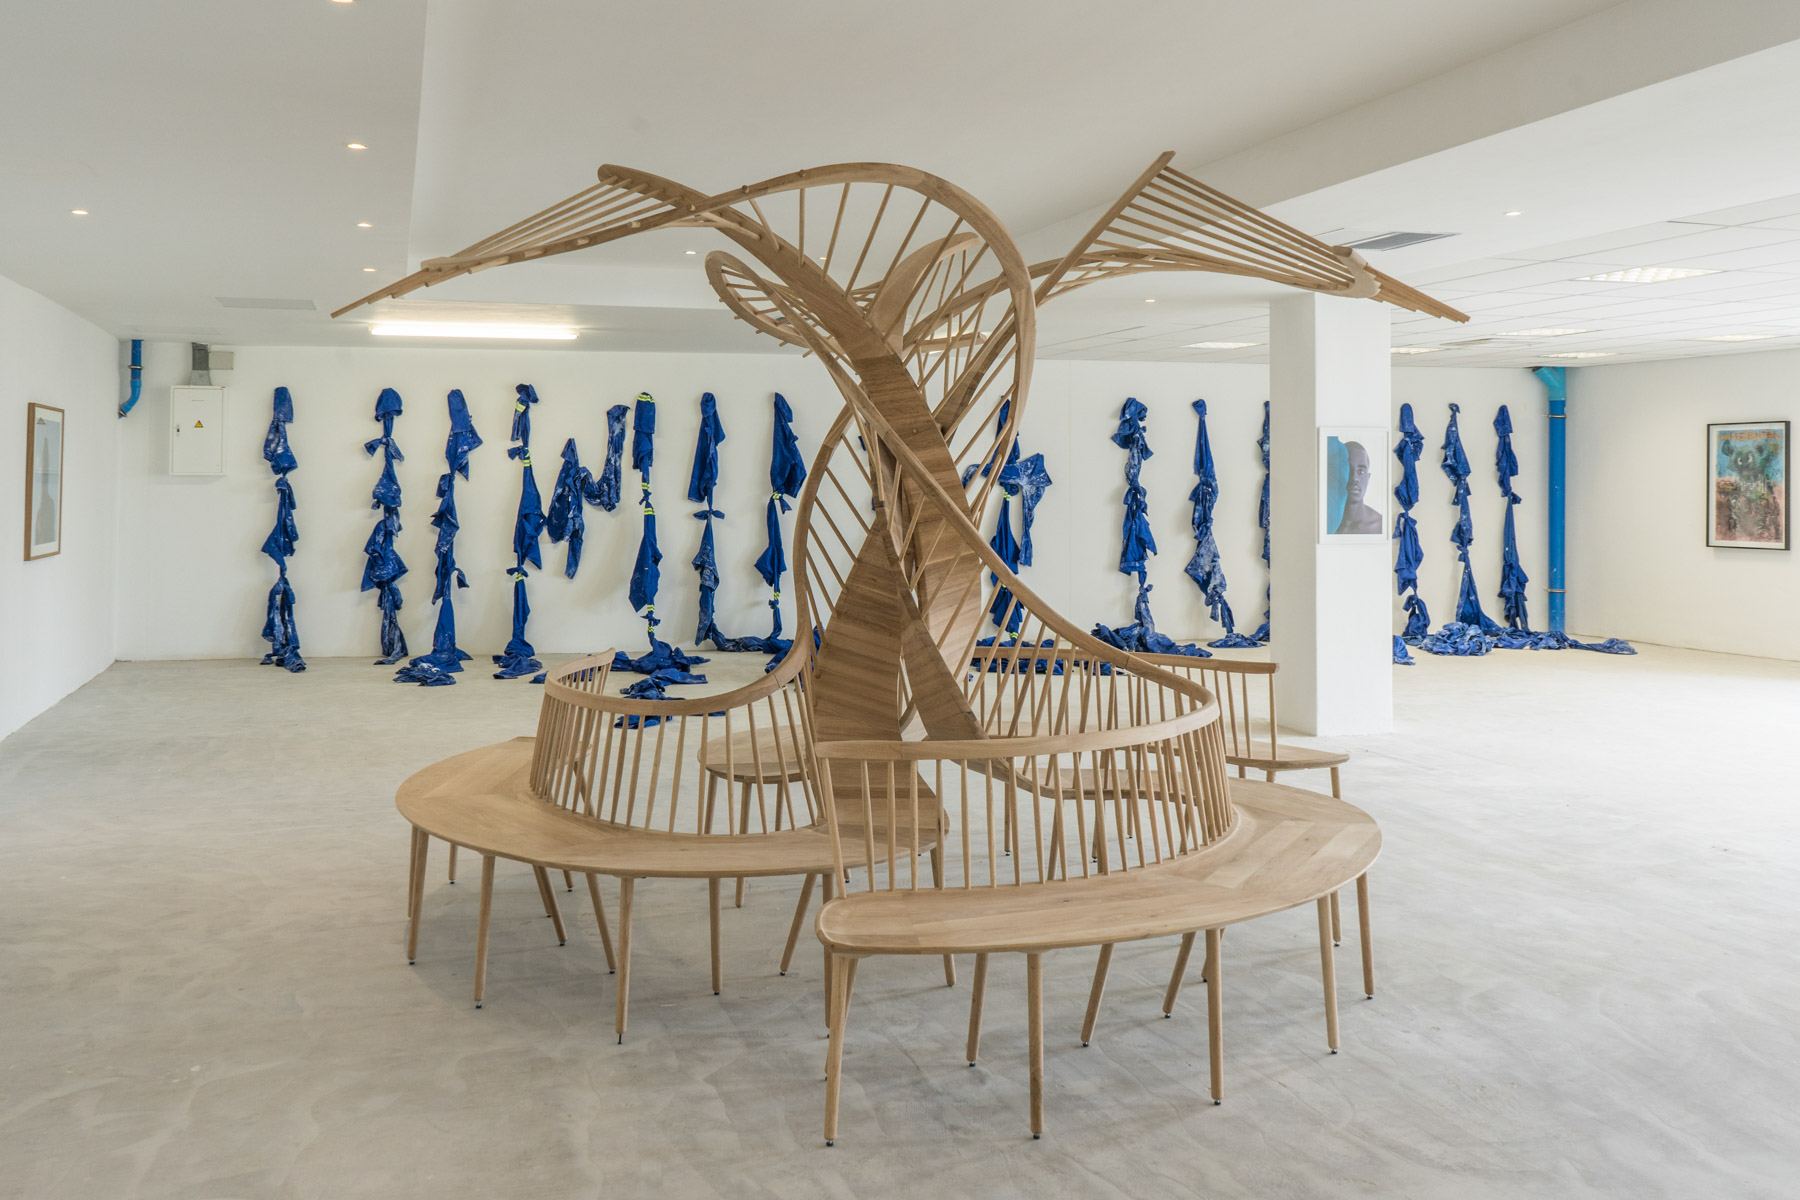 Undated: Houtlander's fibrous, tree-like Preservation bench, forms part of BKhz Gallery's Blue is the Warmest Colour group show.